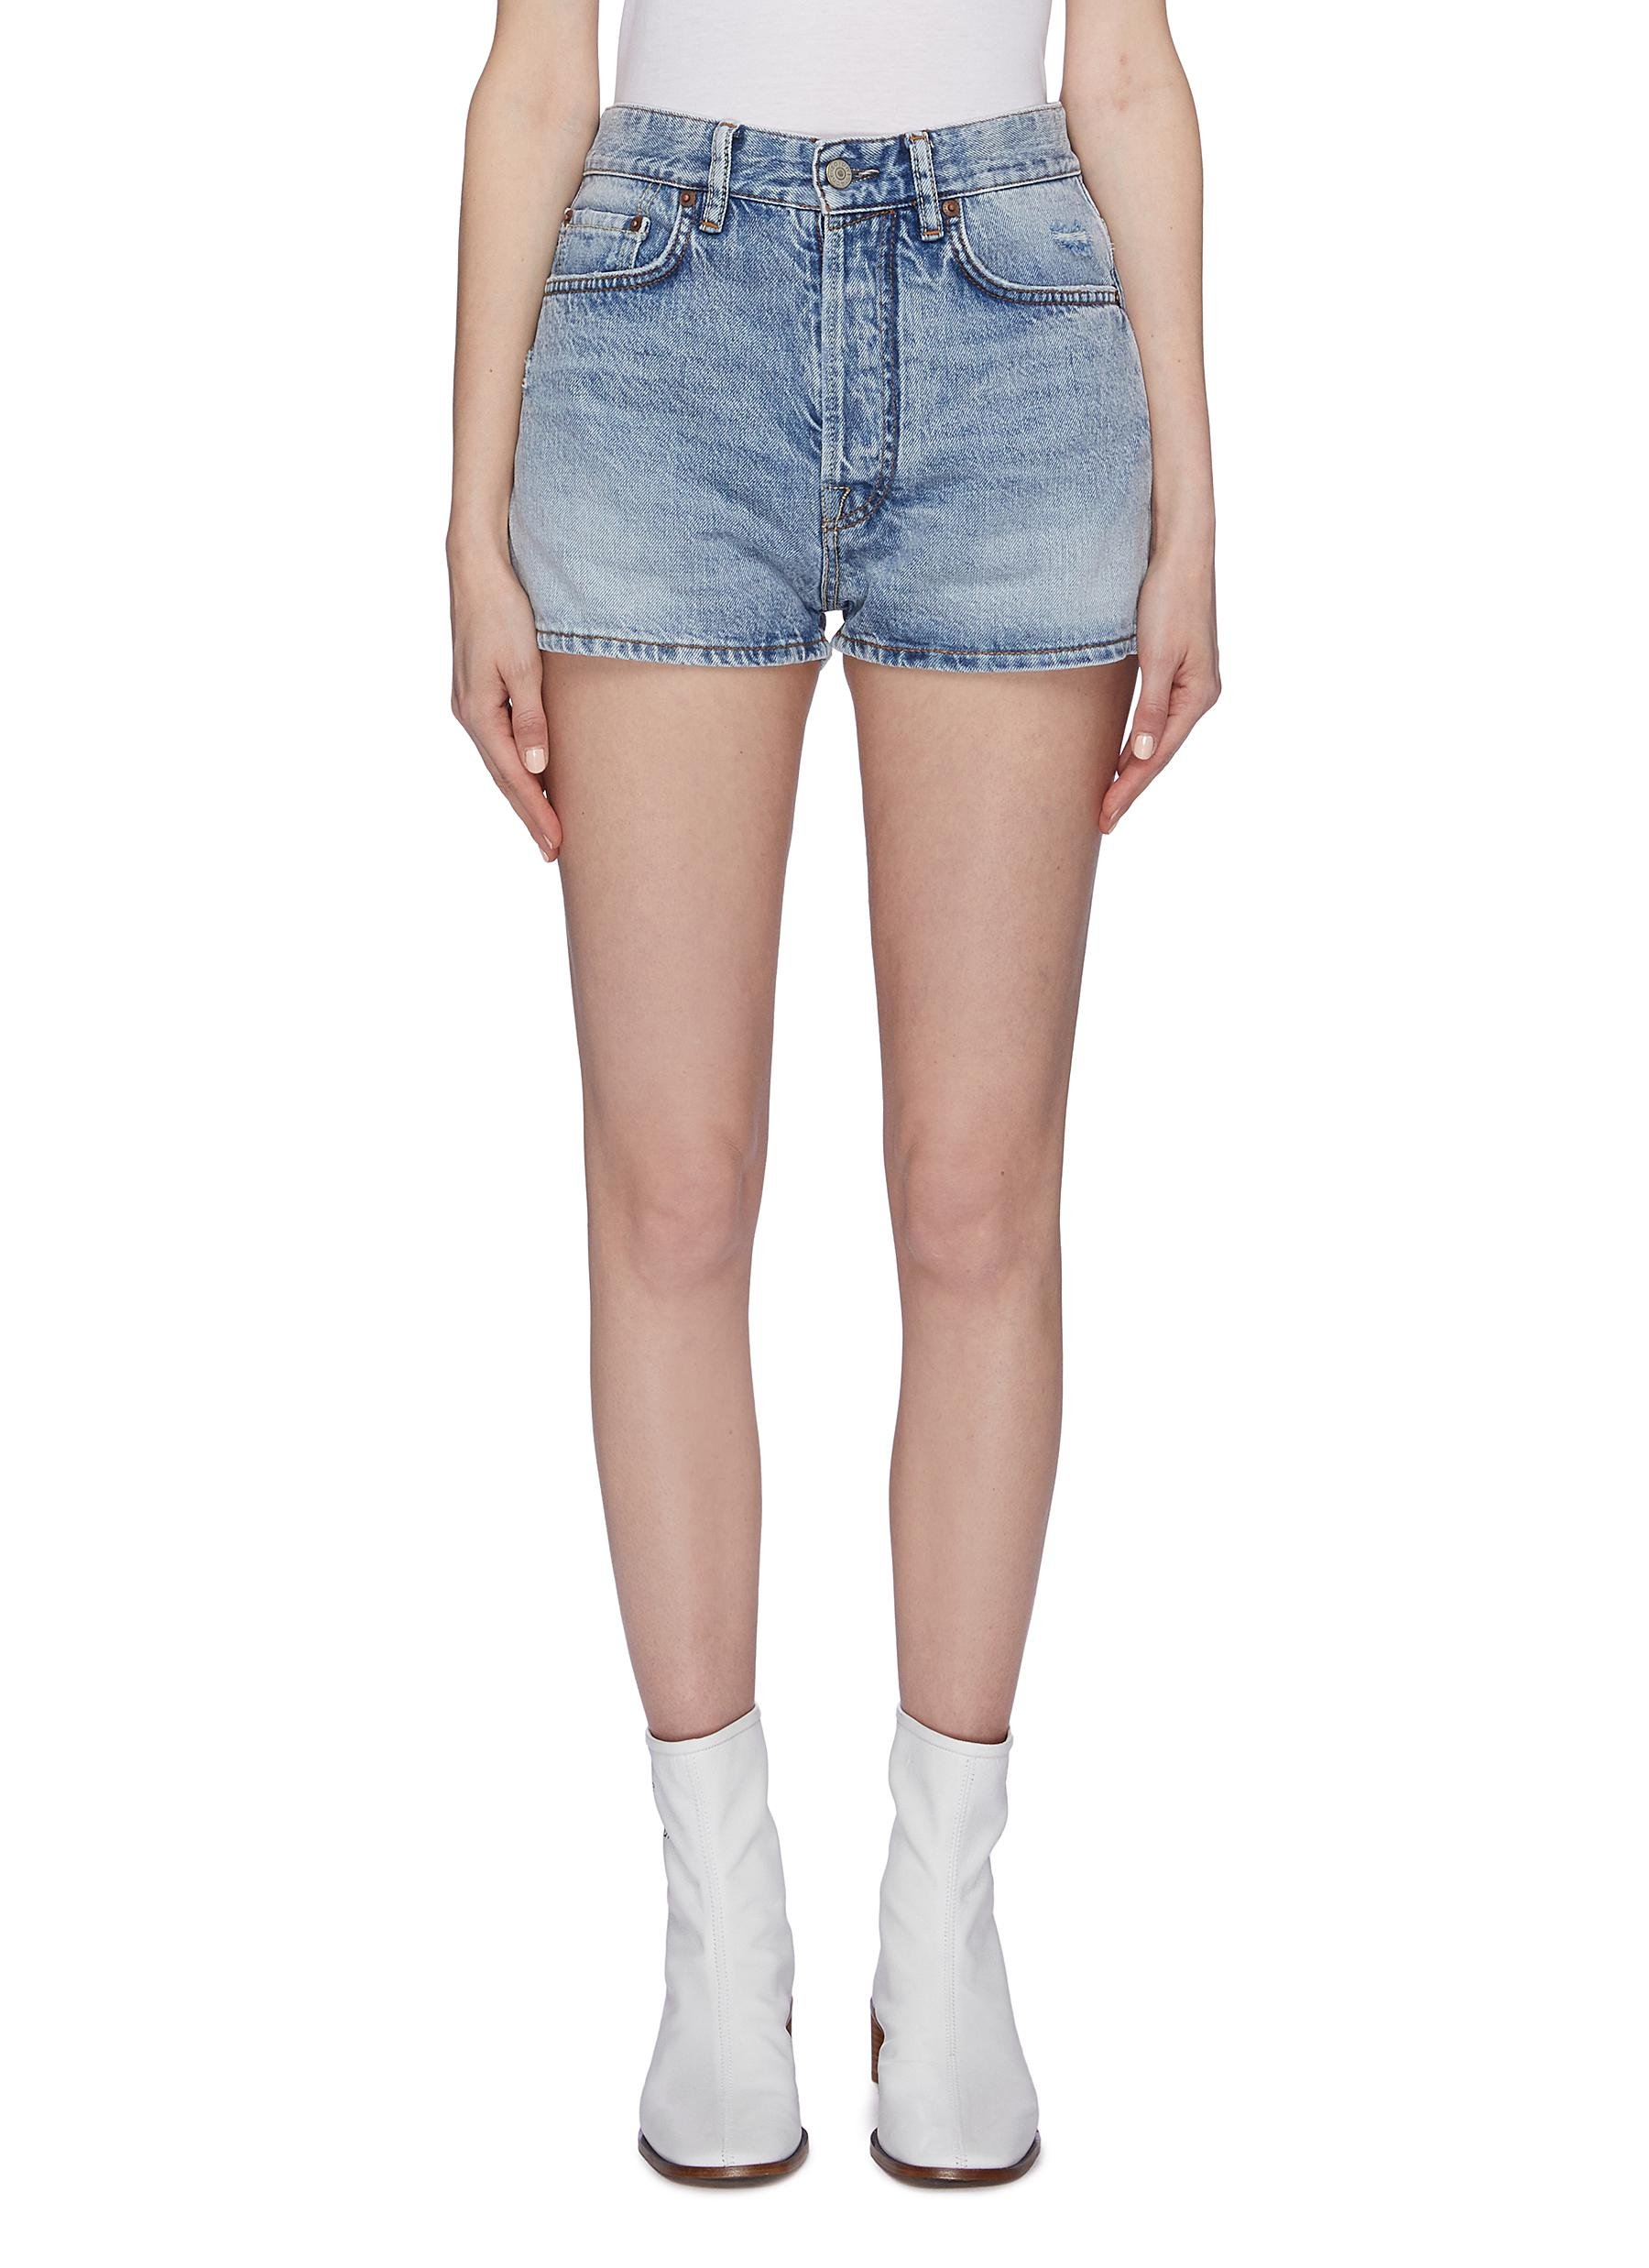 Distressed denim shorts by Acne Studios